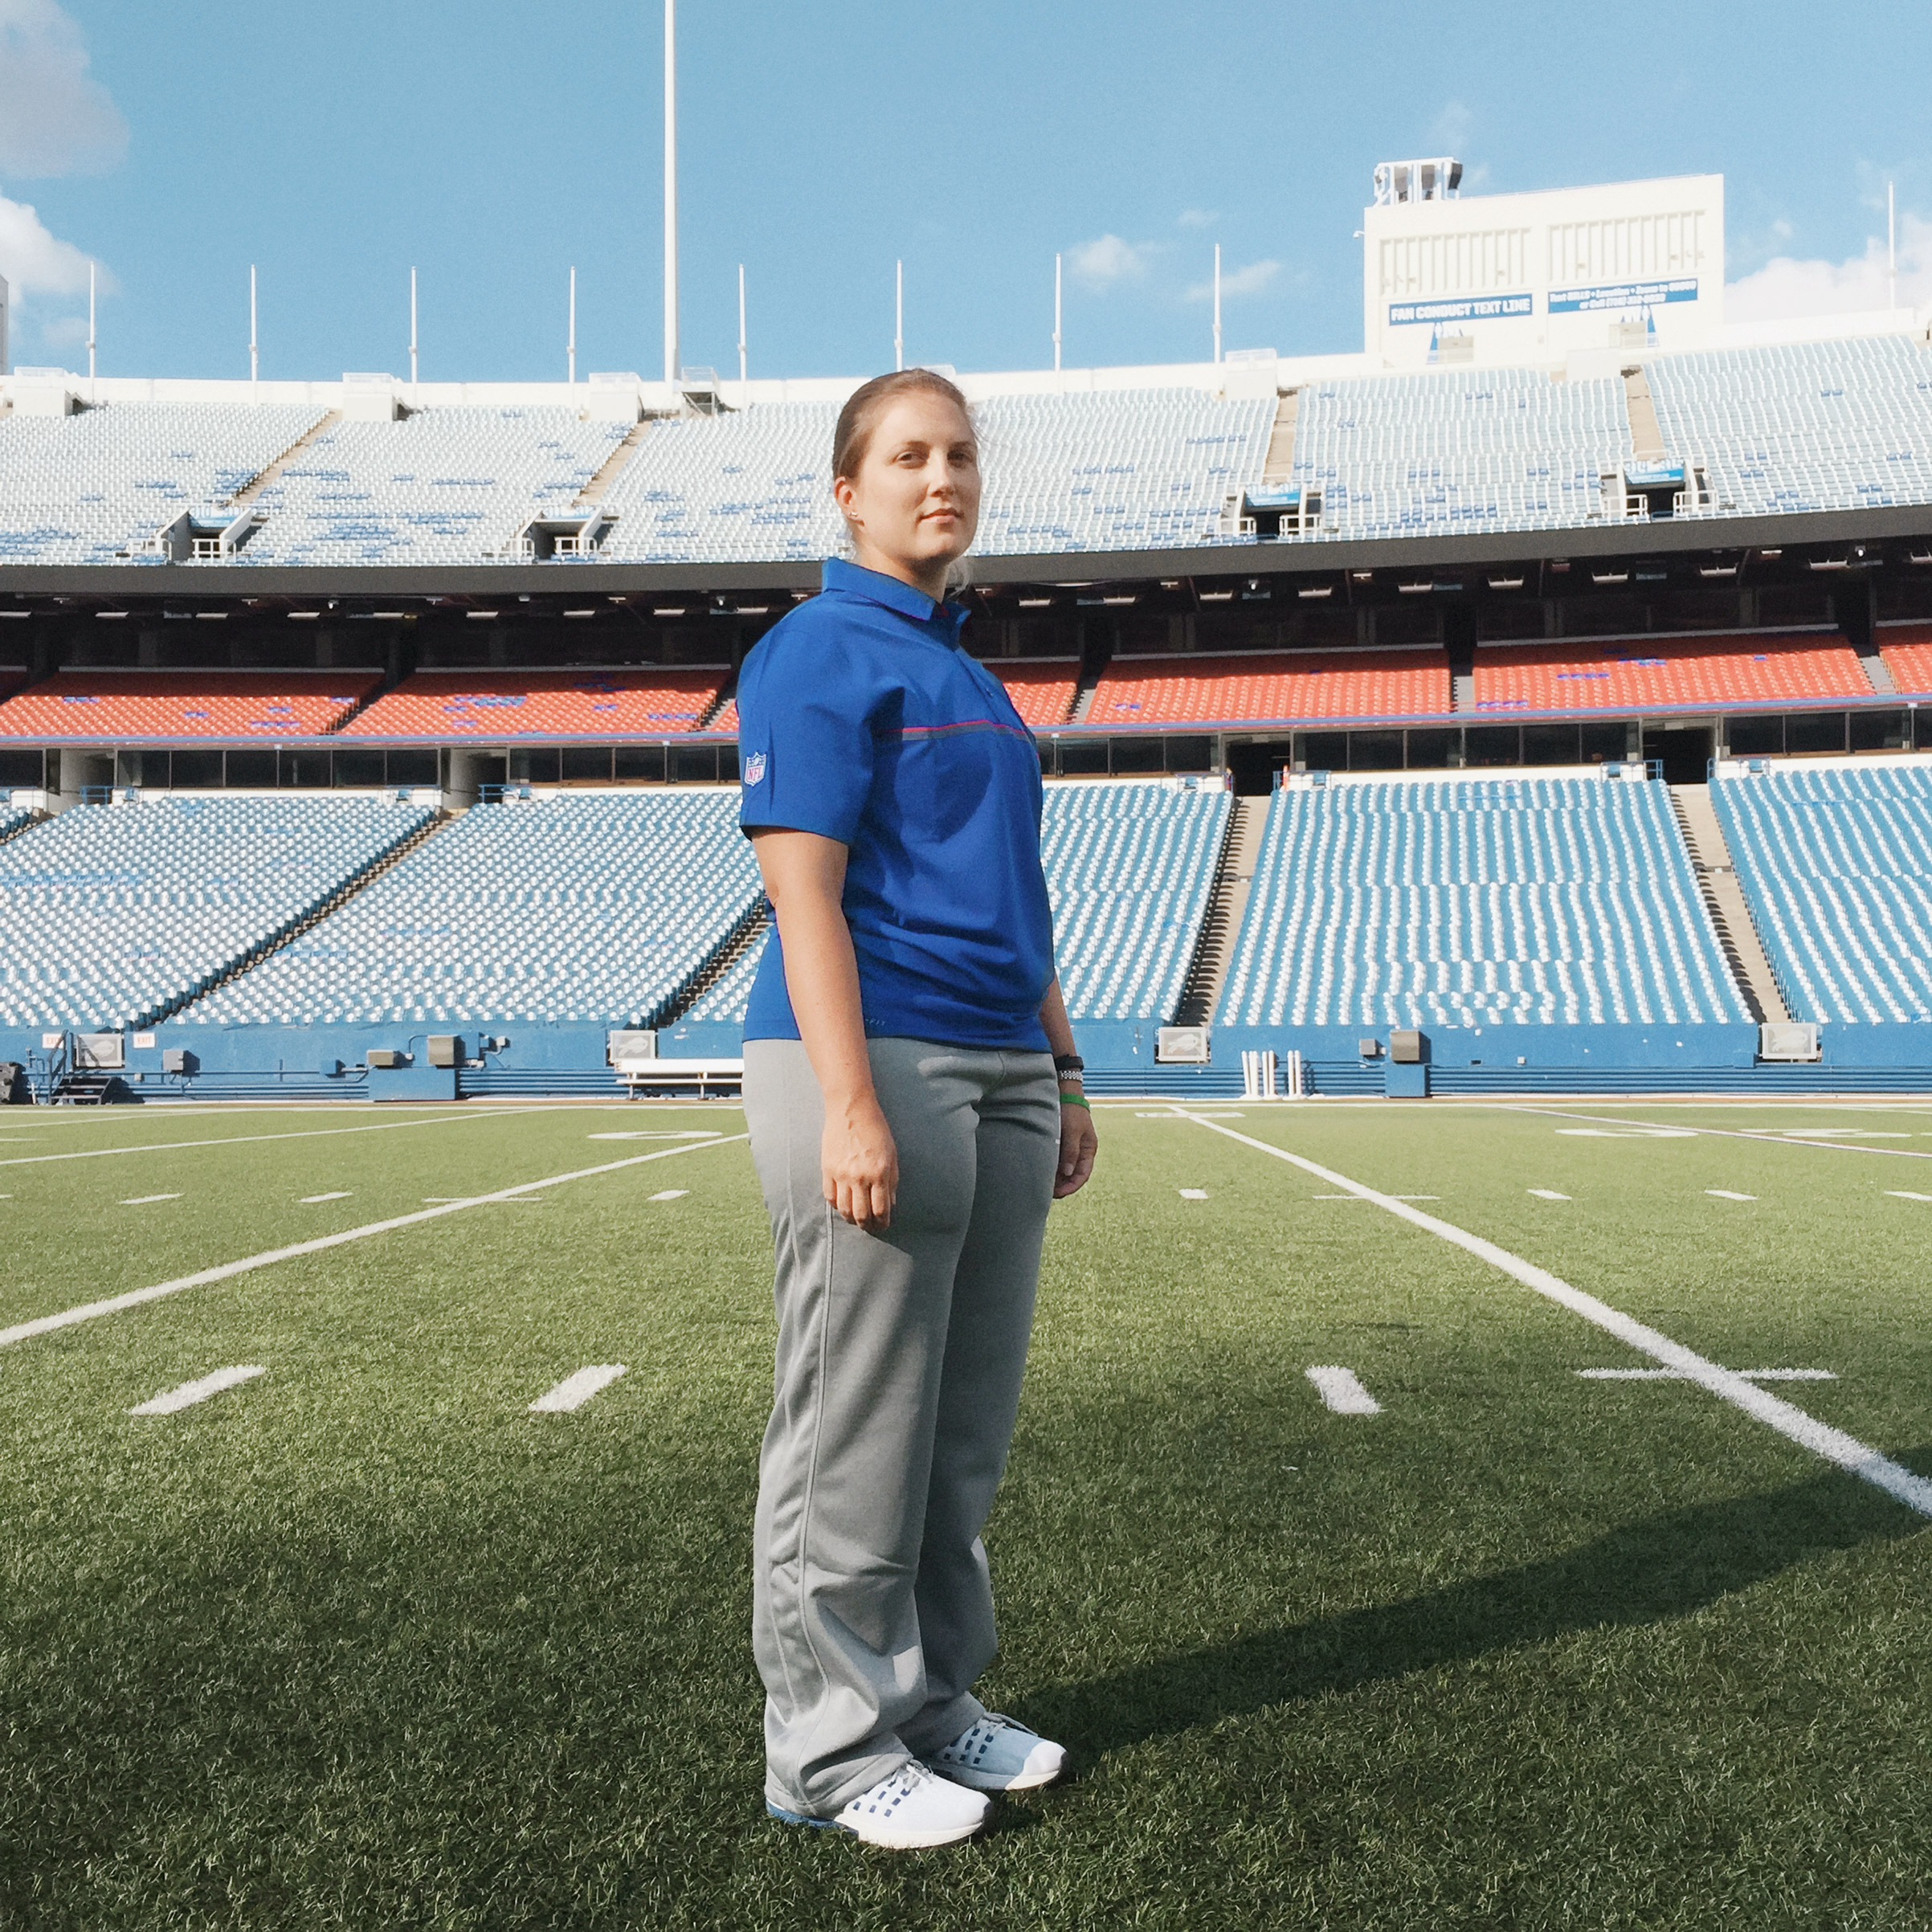 Portrait of Kathryn Smith, photographed at the New Era Field in Buffalo, NY, August 29, 2016.